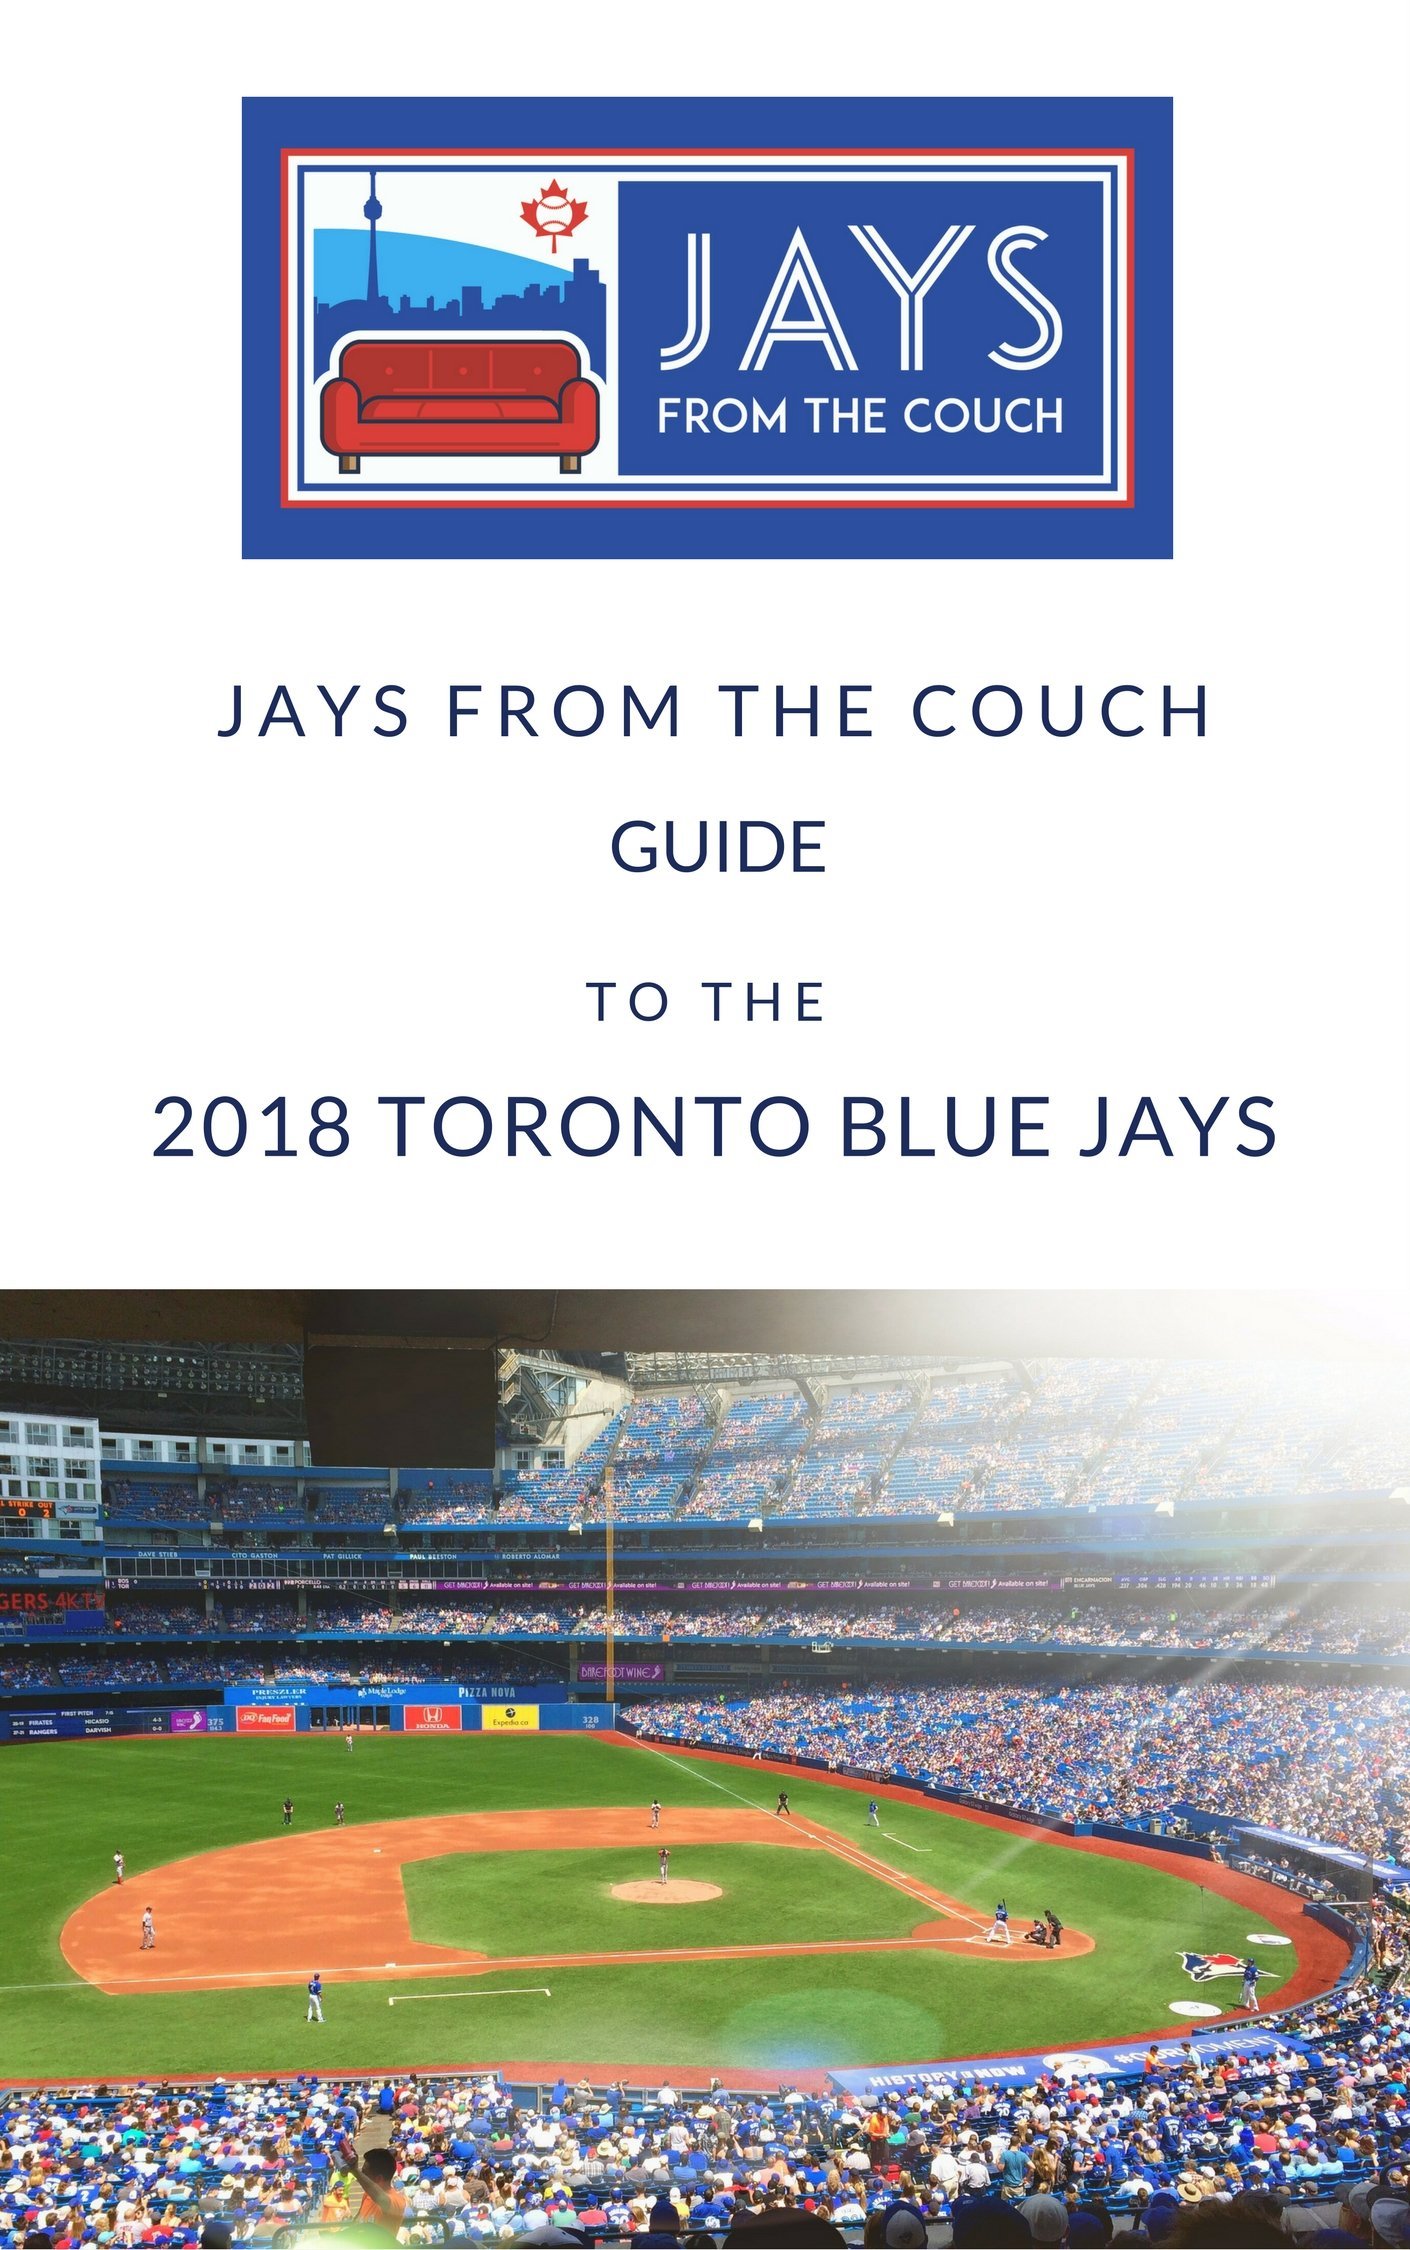 Jays From The Couch Guide To The 2018 Toronto Blue Jays (English Edition)